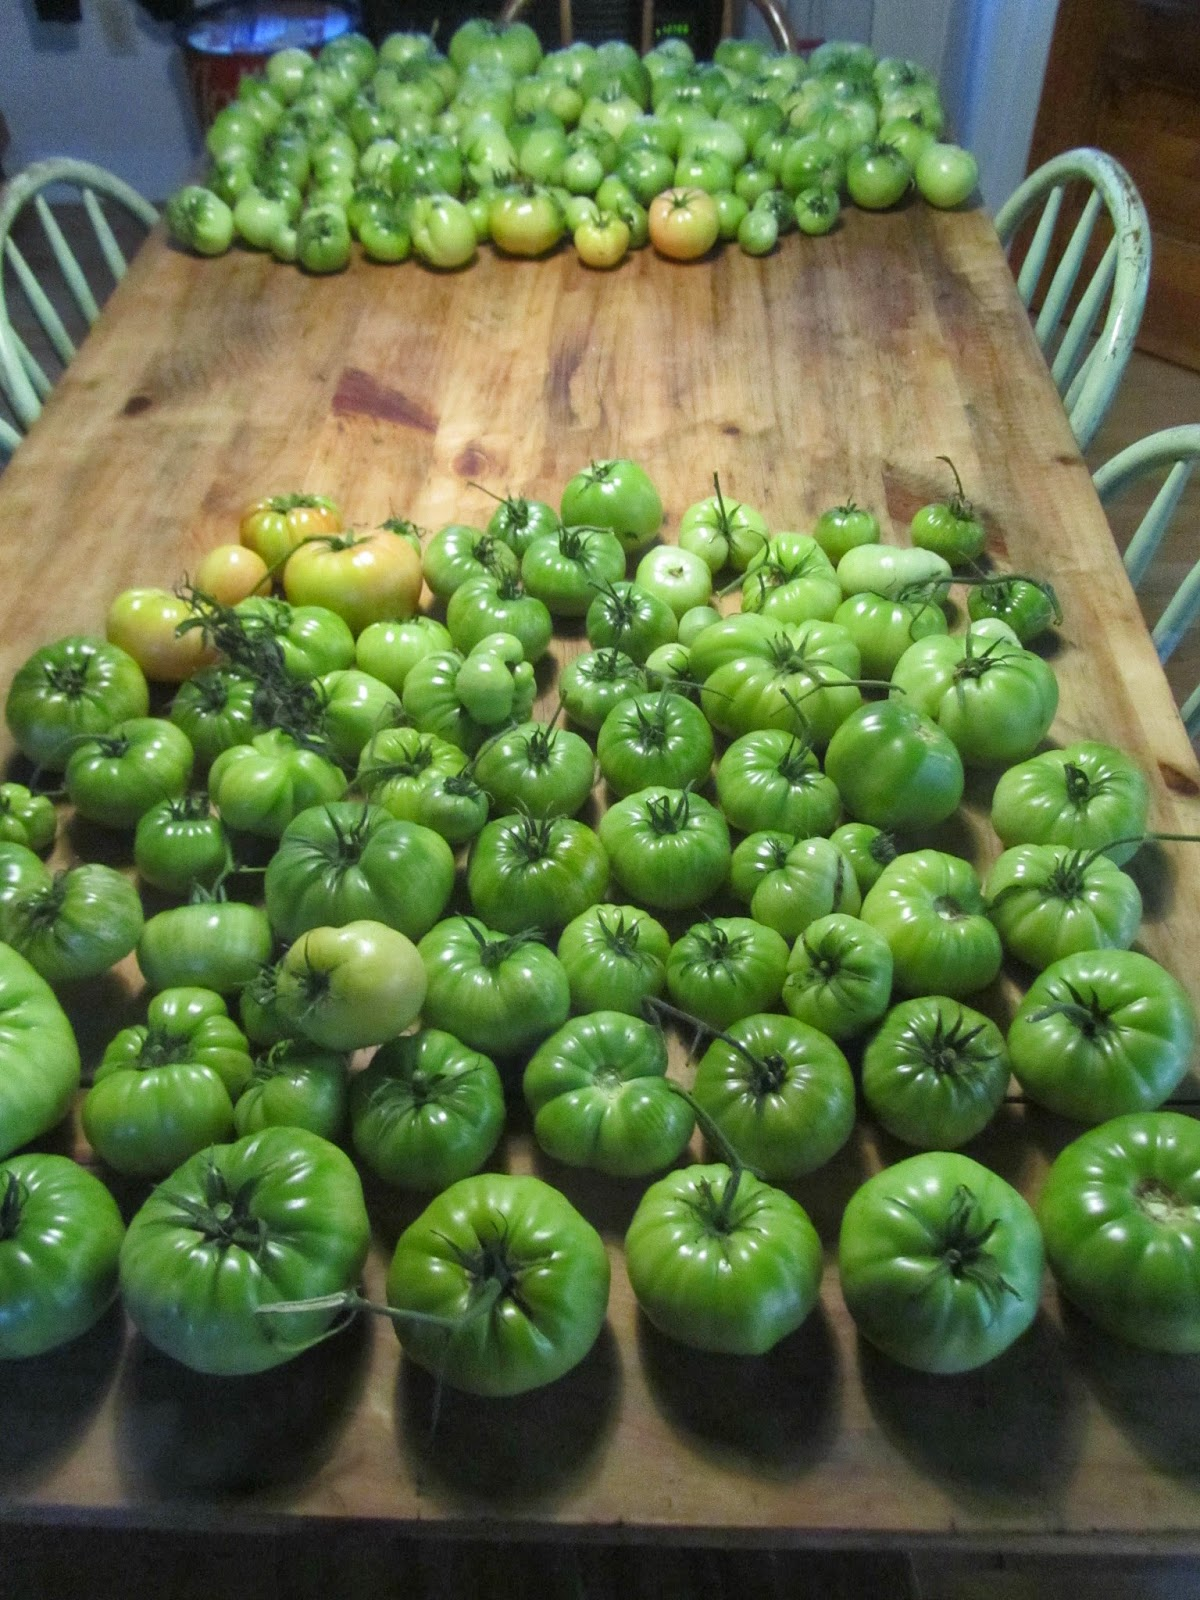 Harvest of Green Rutgers & Sicilian Saucer tomatoes on the farm table